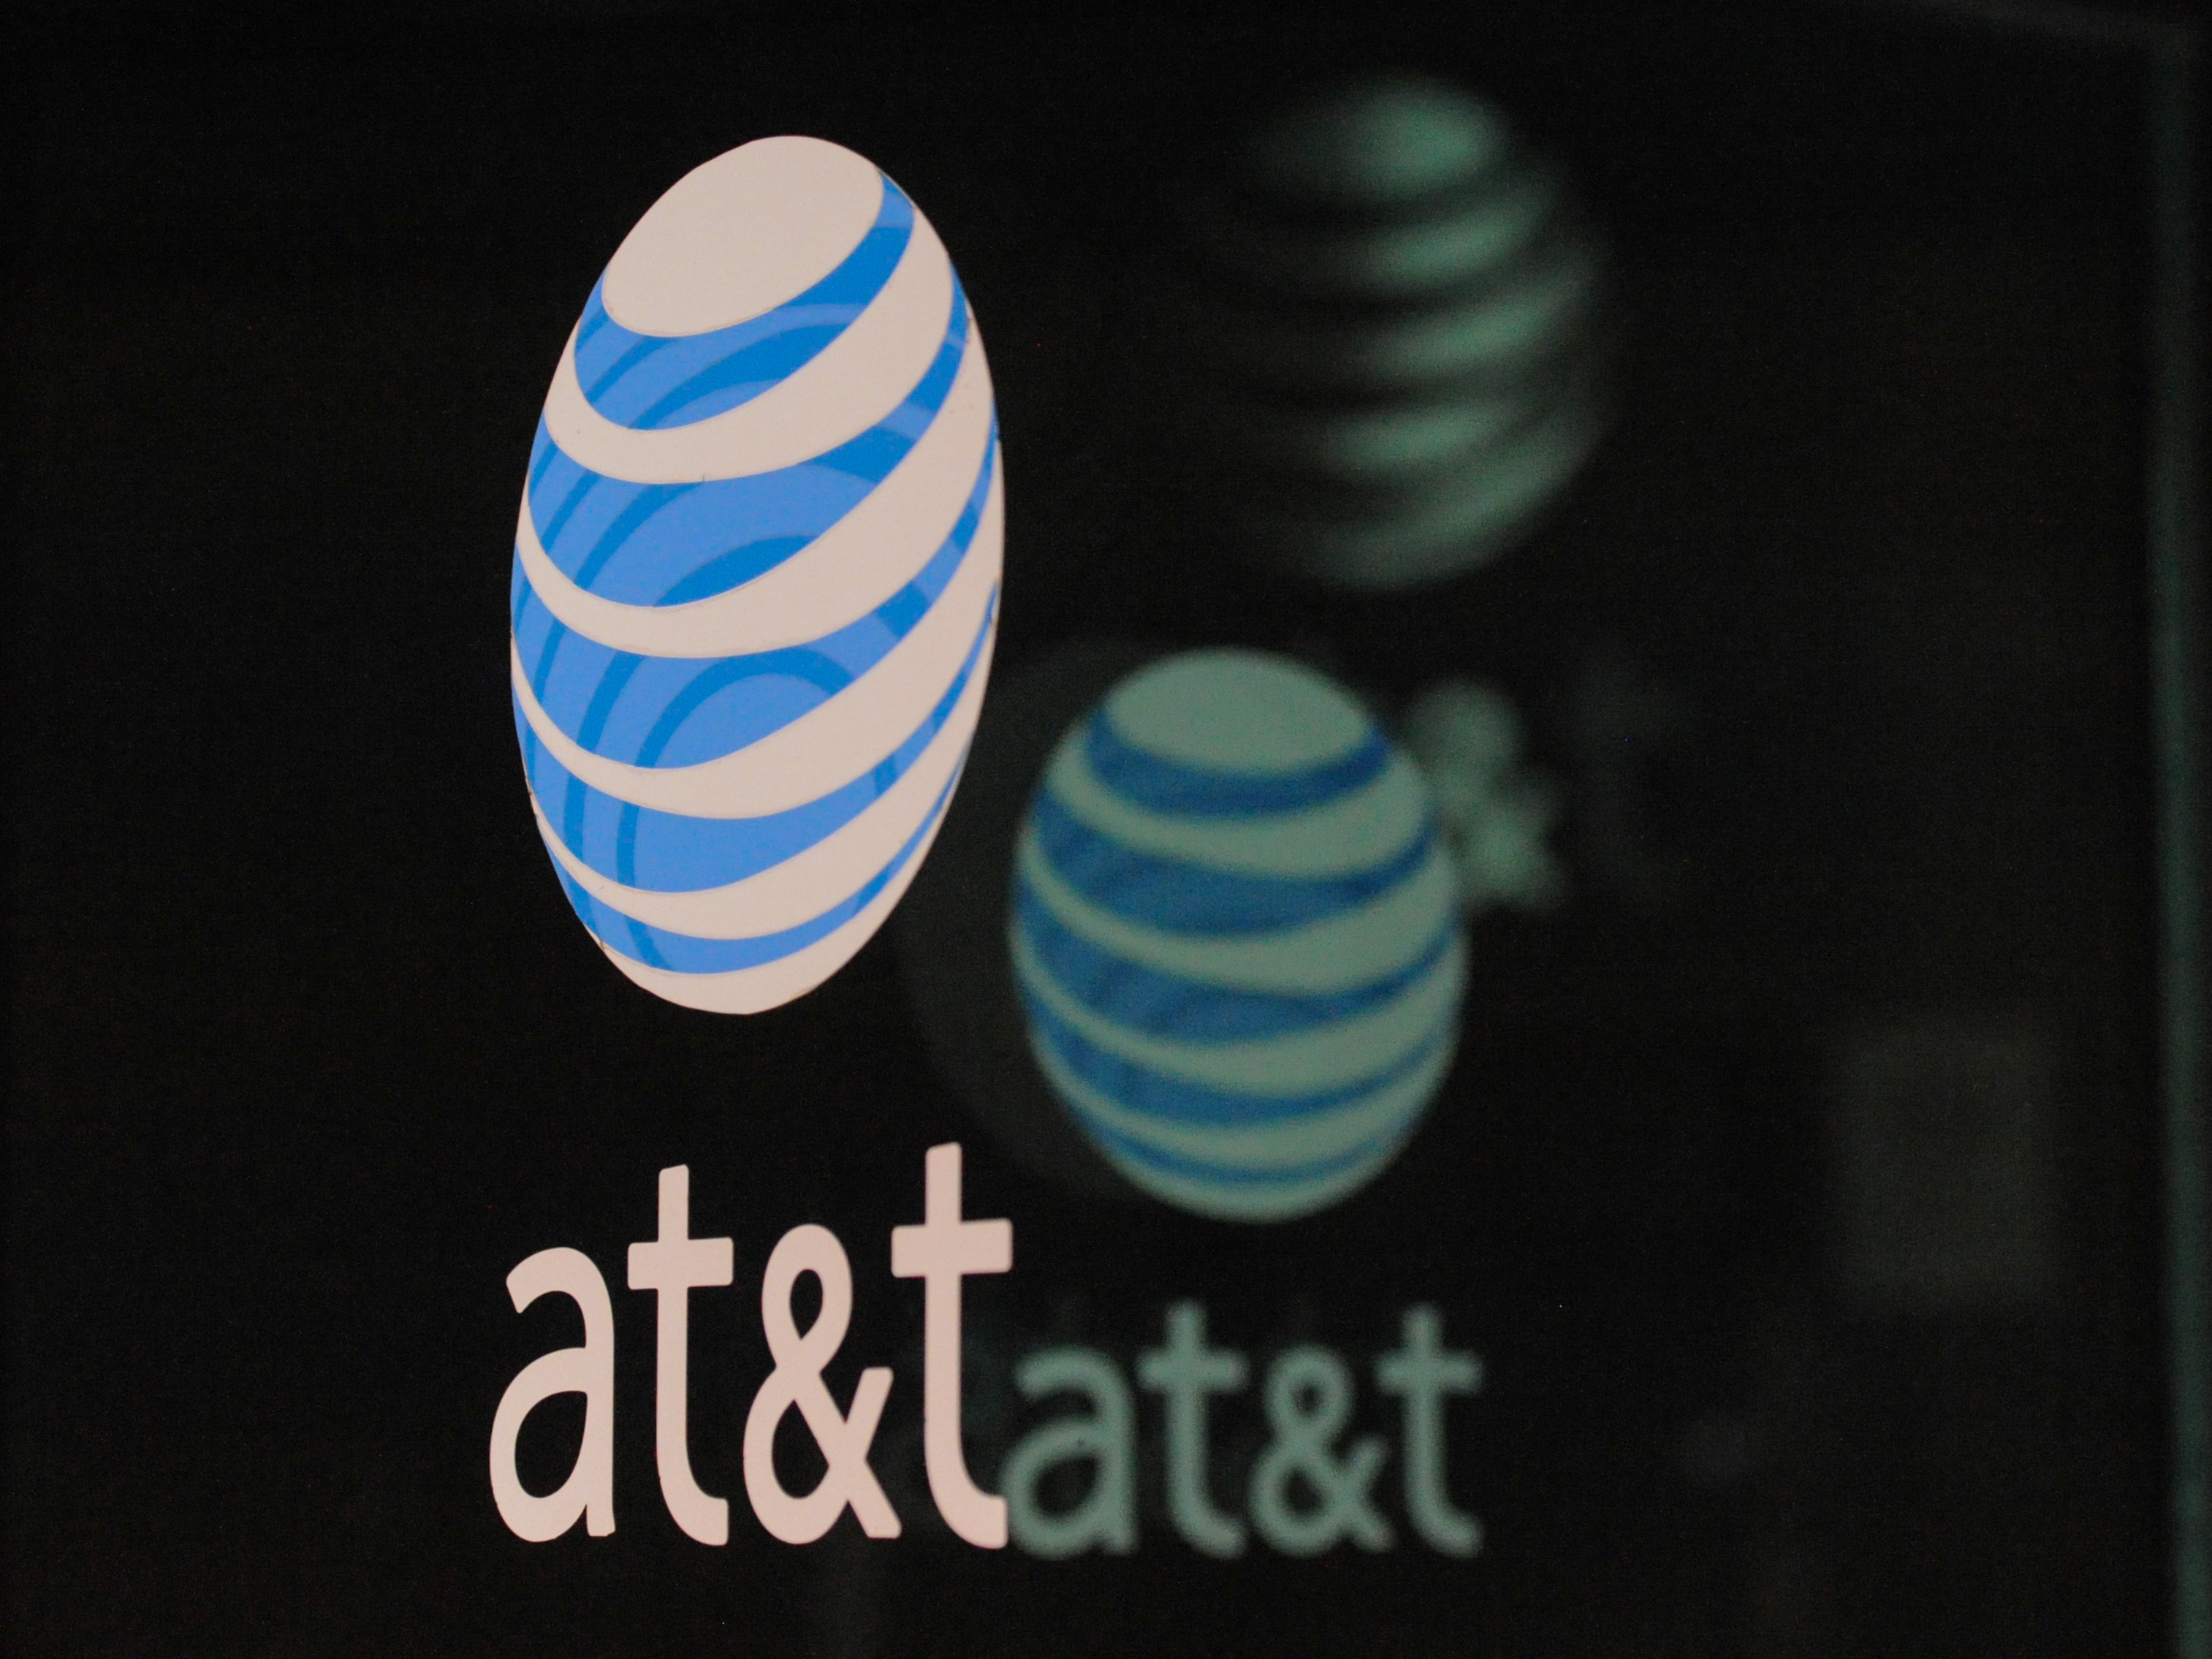 U.S. Judge Approves AT&T's $85 Billion Merger With Time Warner